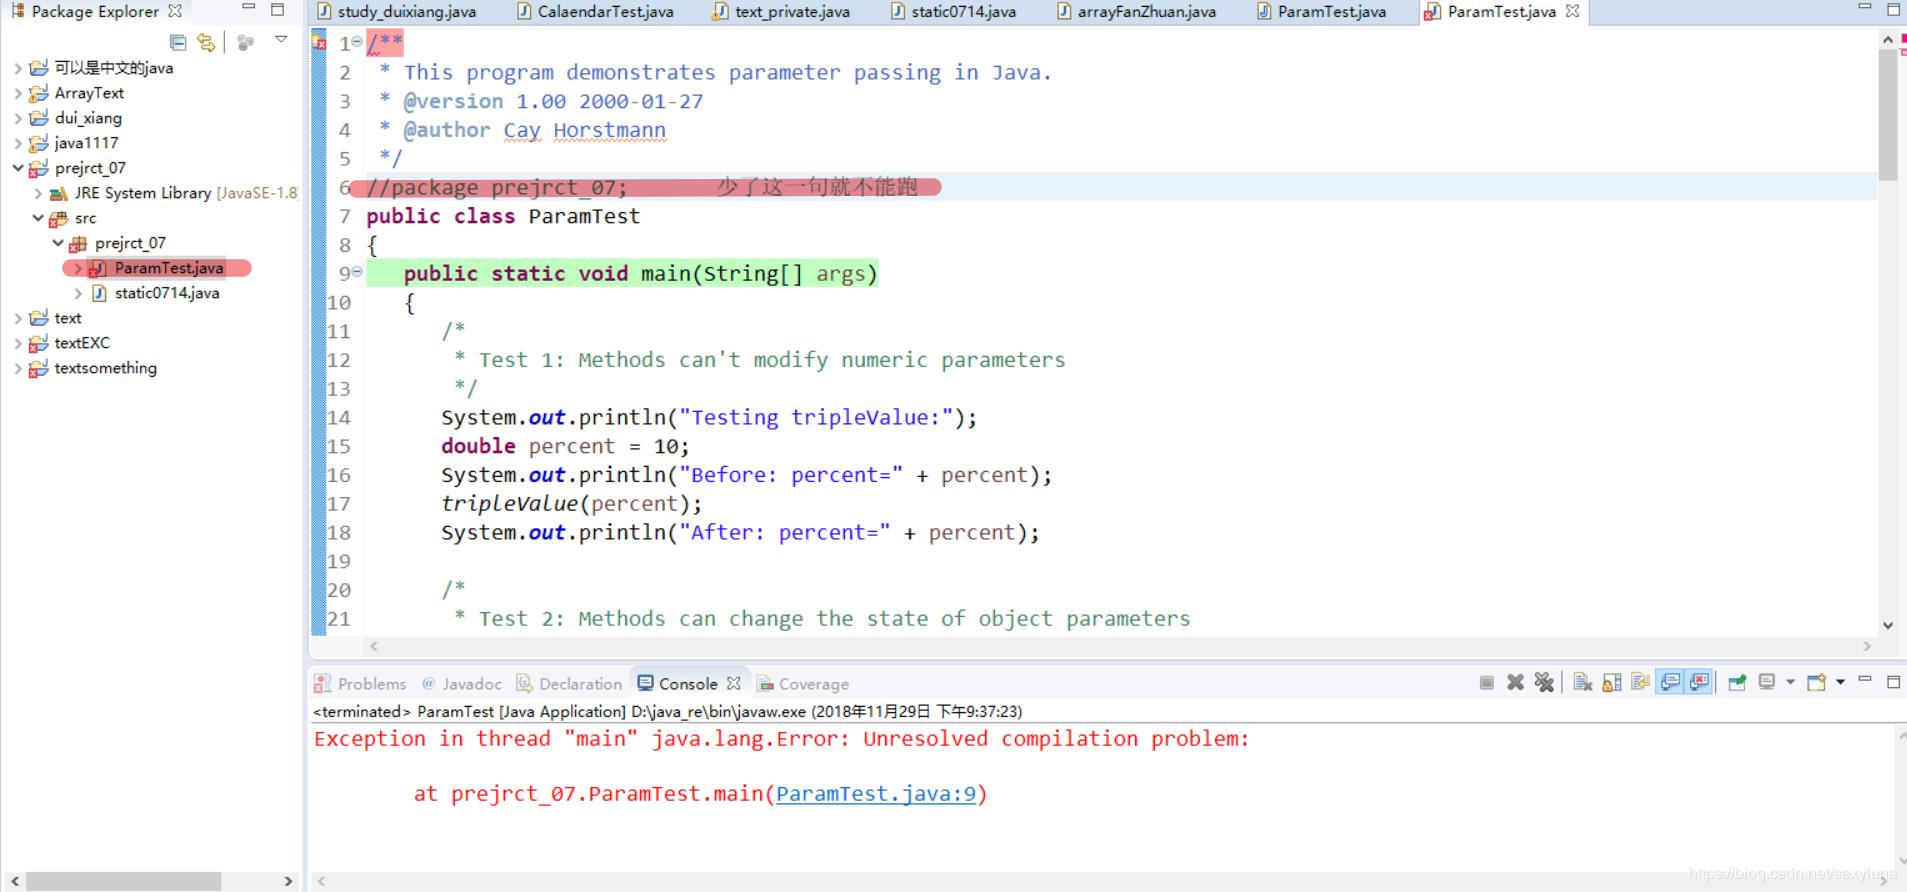 Exception in thread